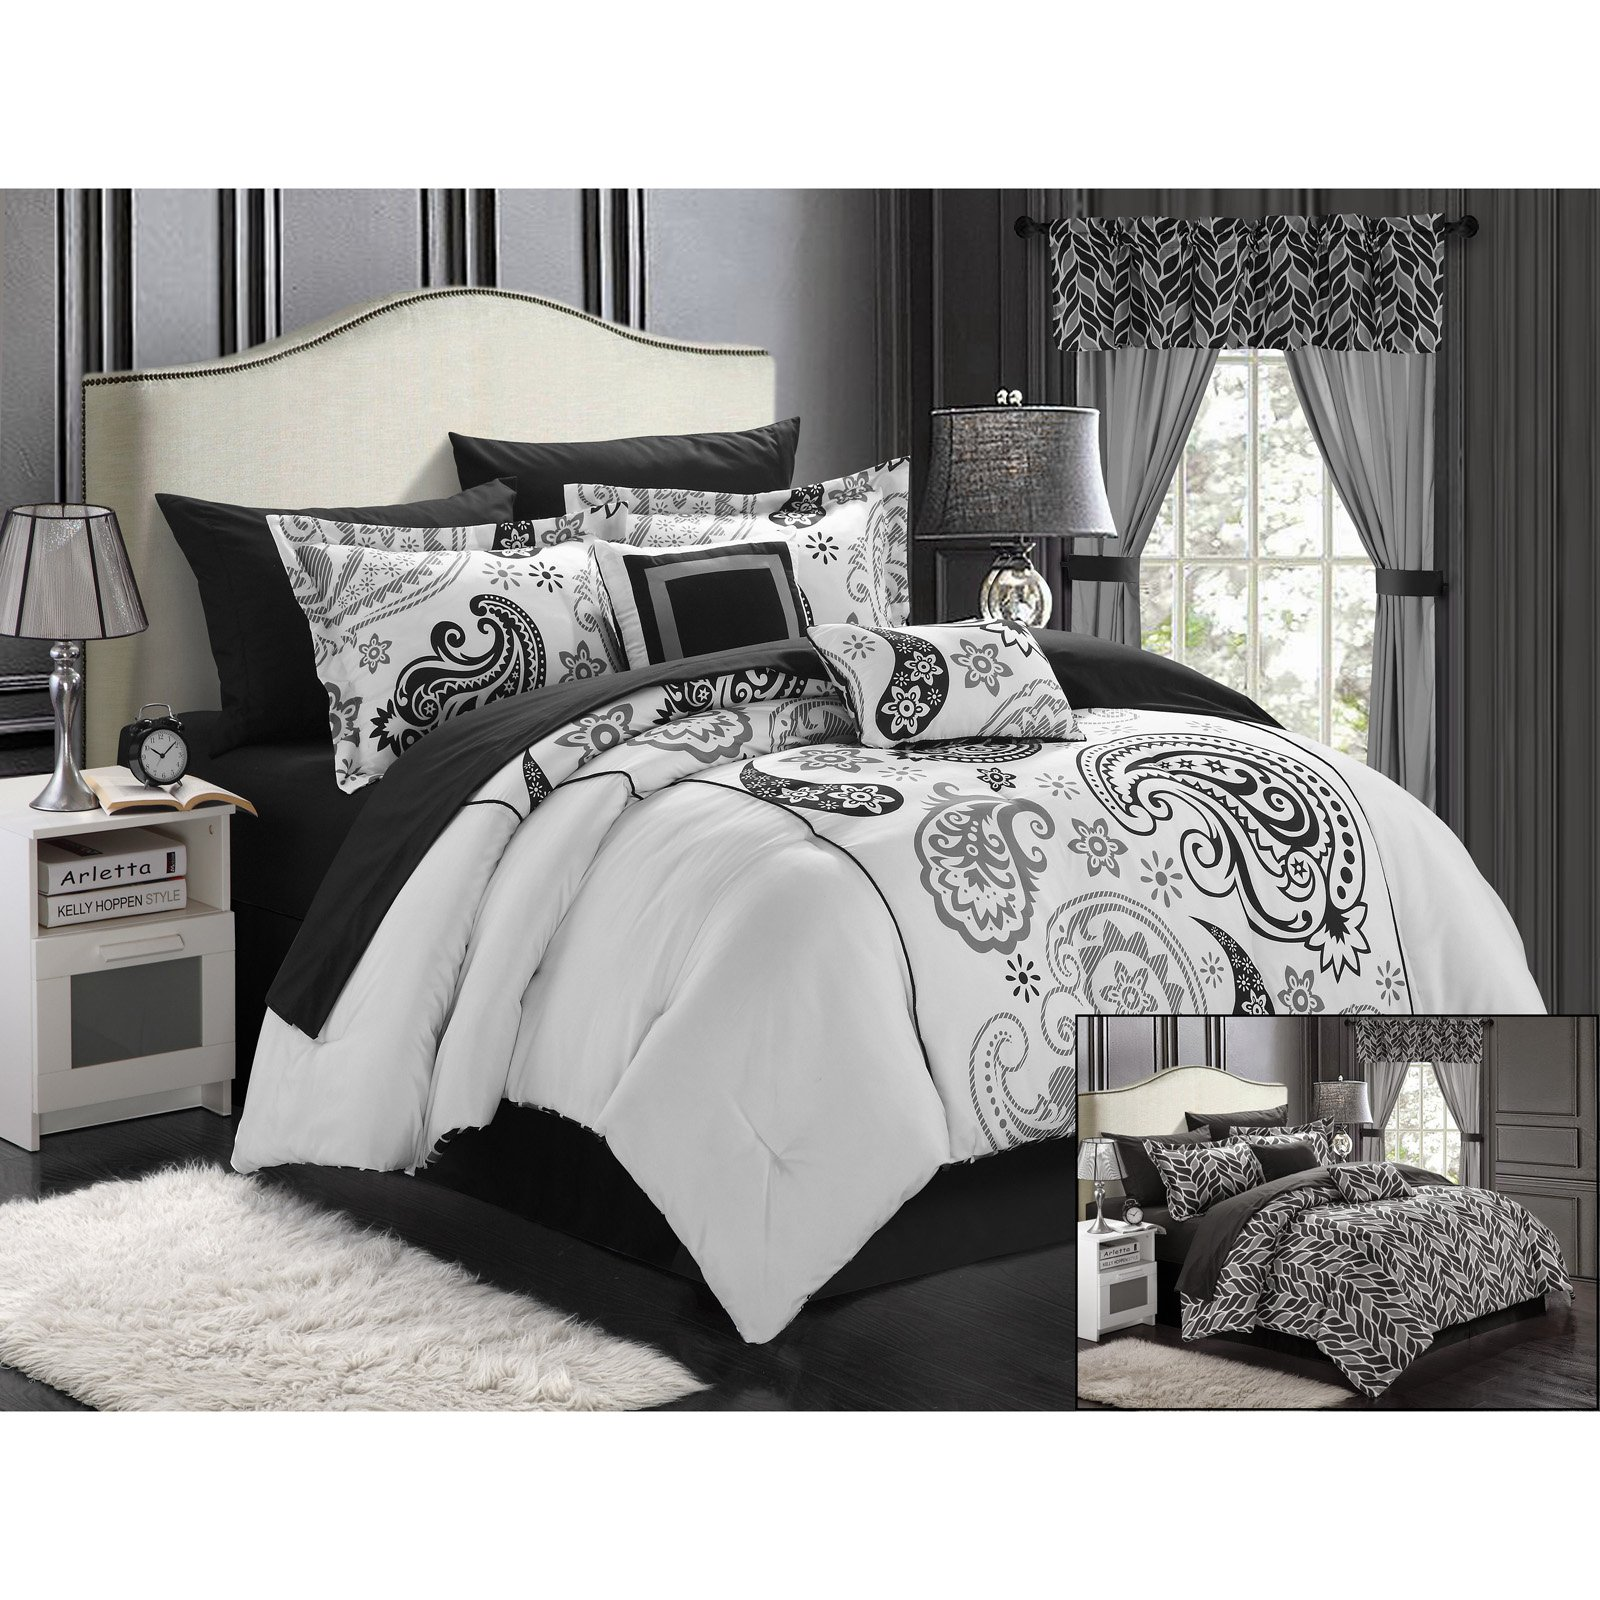 comforter taupe glenmore jacquard reversible pebble paisley set waterford p zi